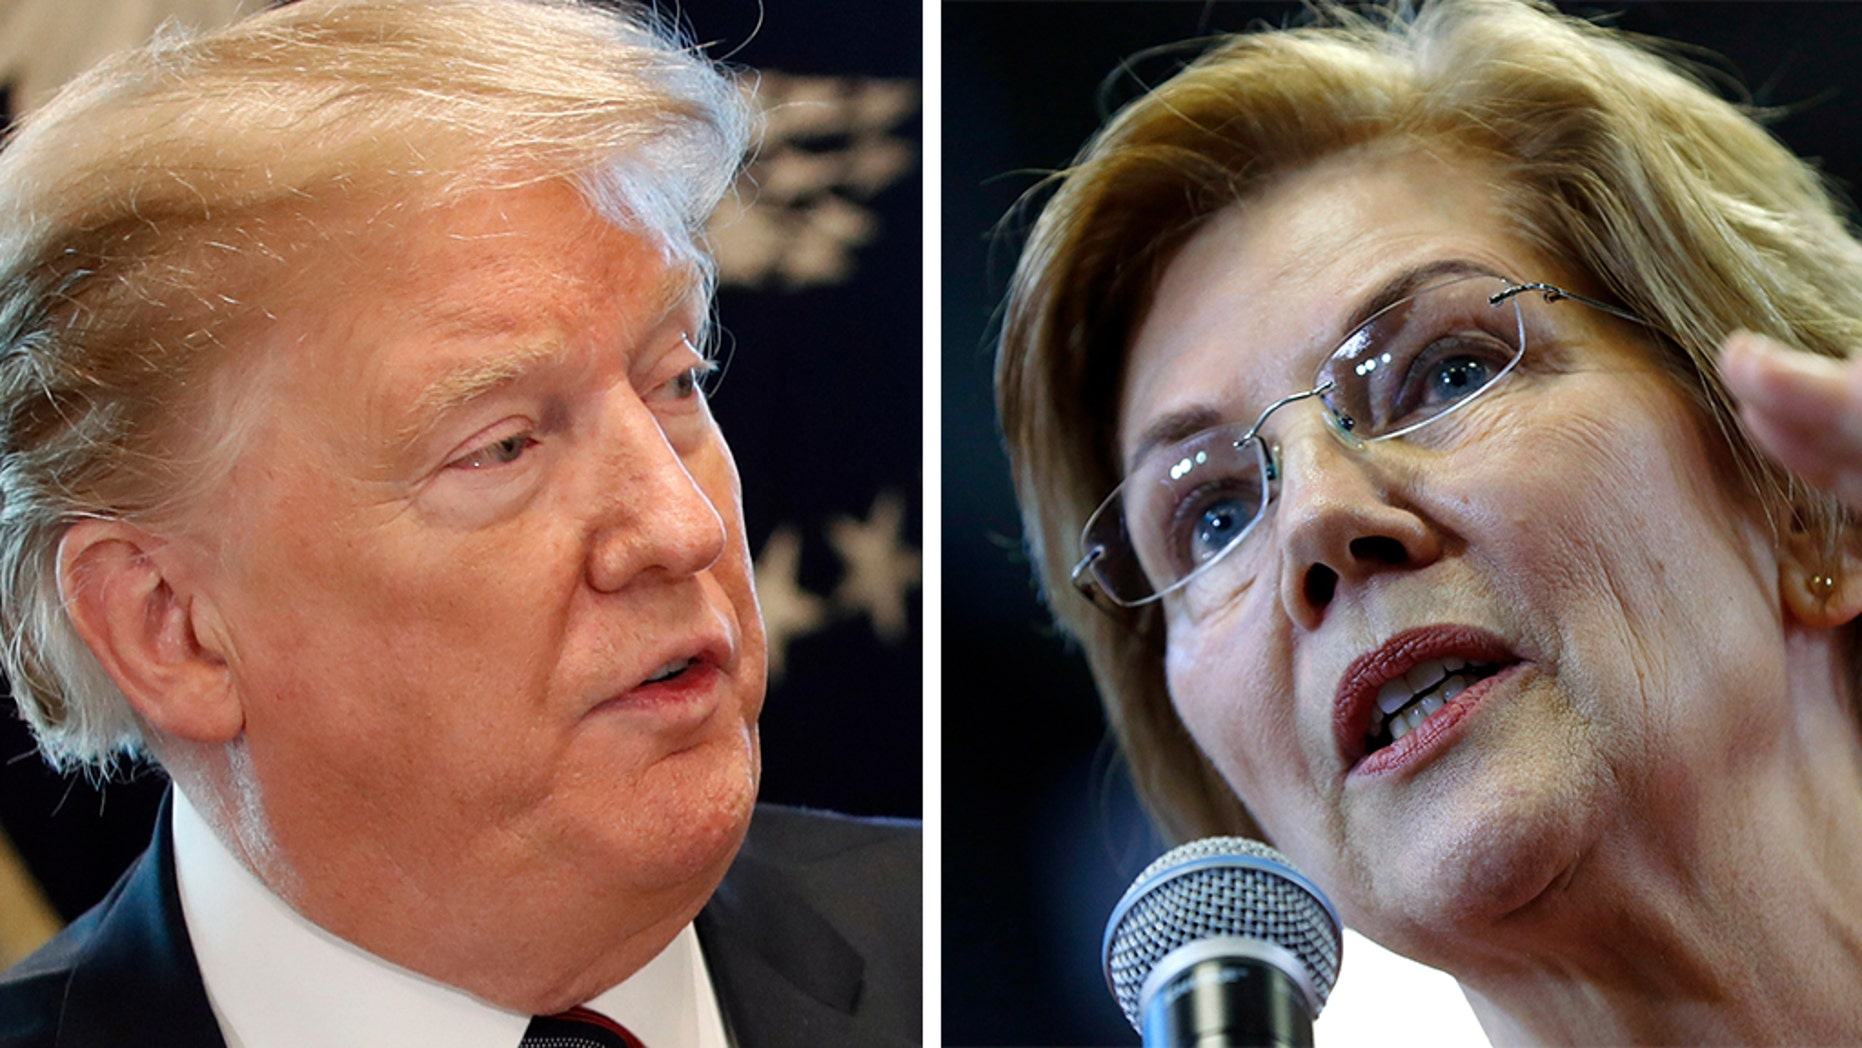 Trump mocks Elizabeth Warren using Native American stereotypes